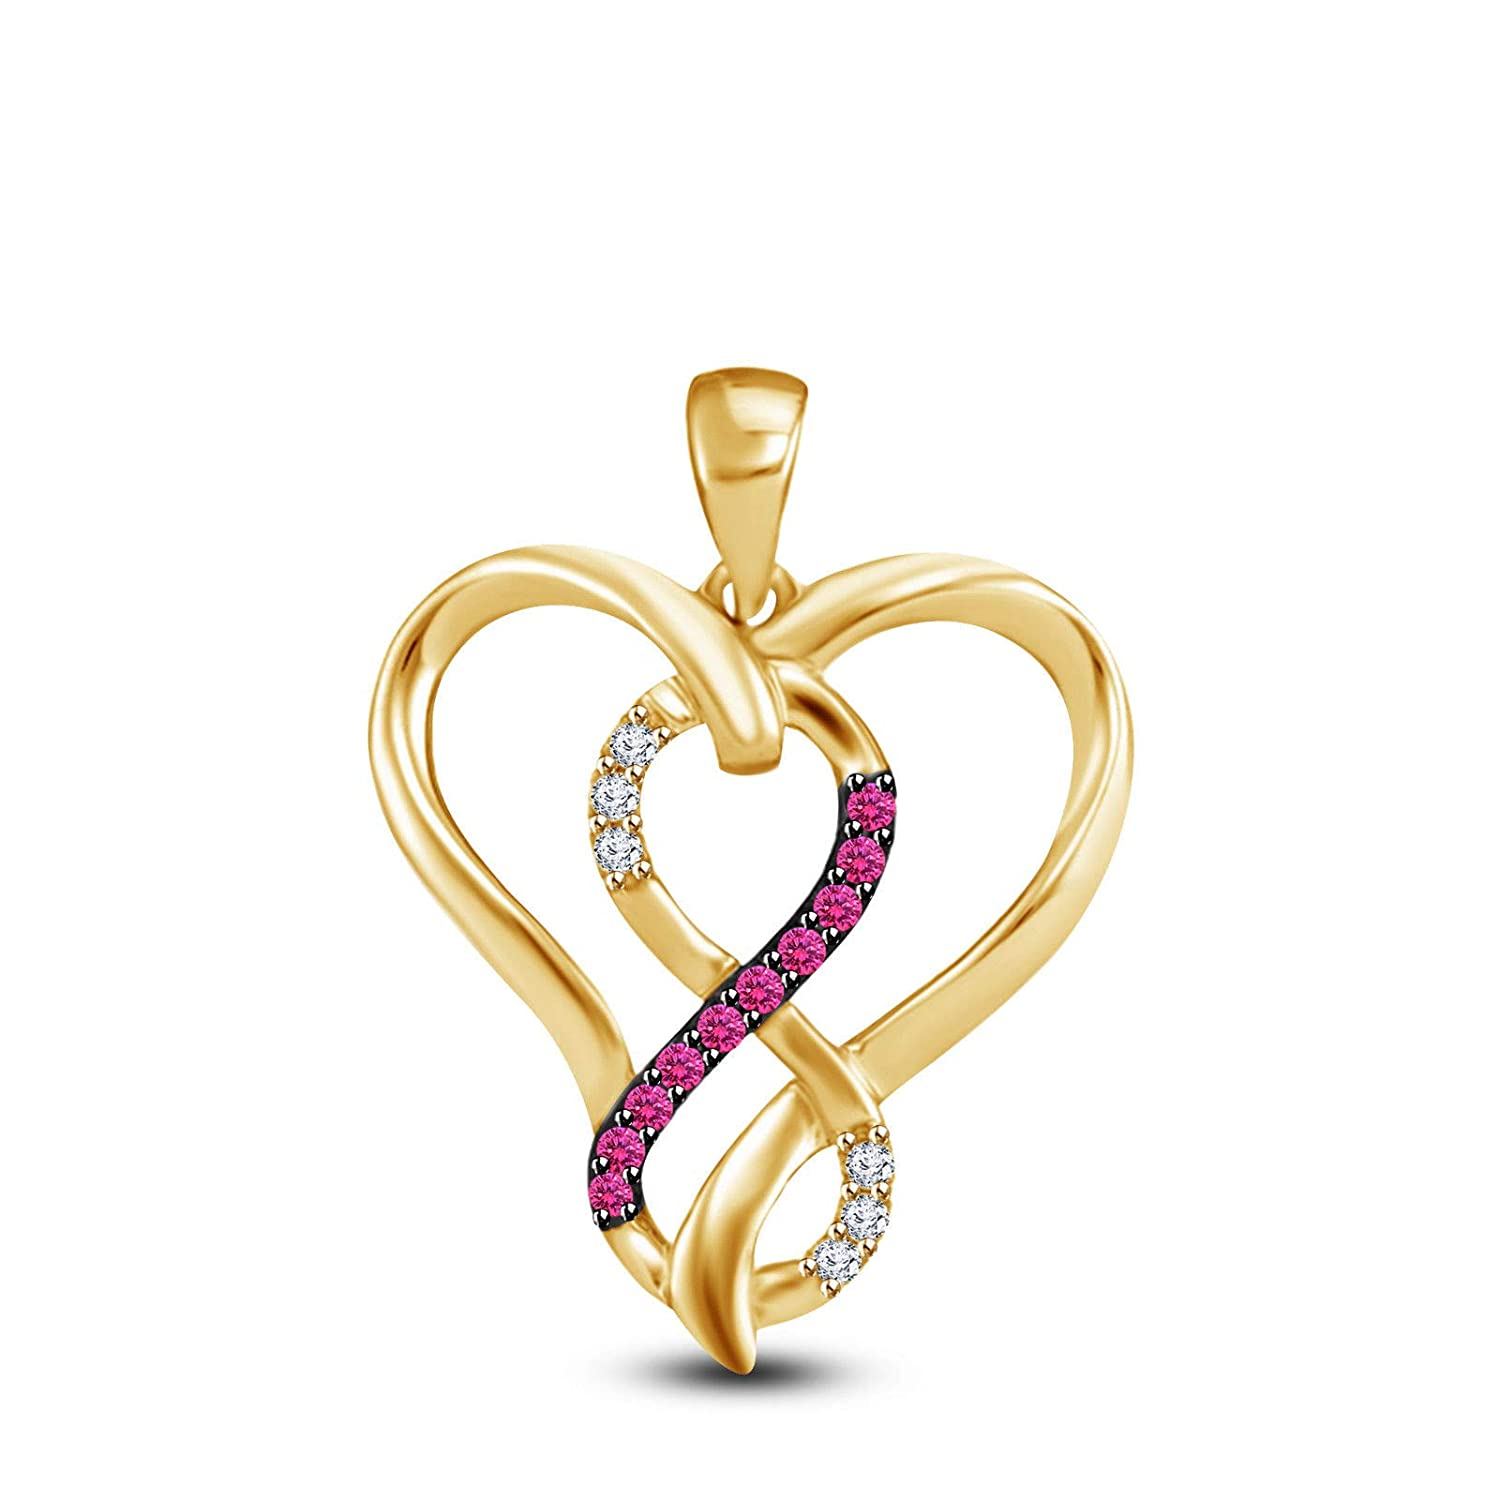 AT Jewels 14K Yellow Gold Over 925 Sterling Silver Round Cut Pink Sapphire and Cubic Zirconia Infinity Heart Pendant